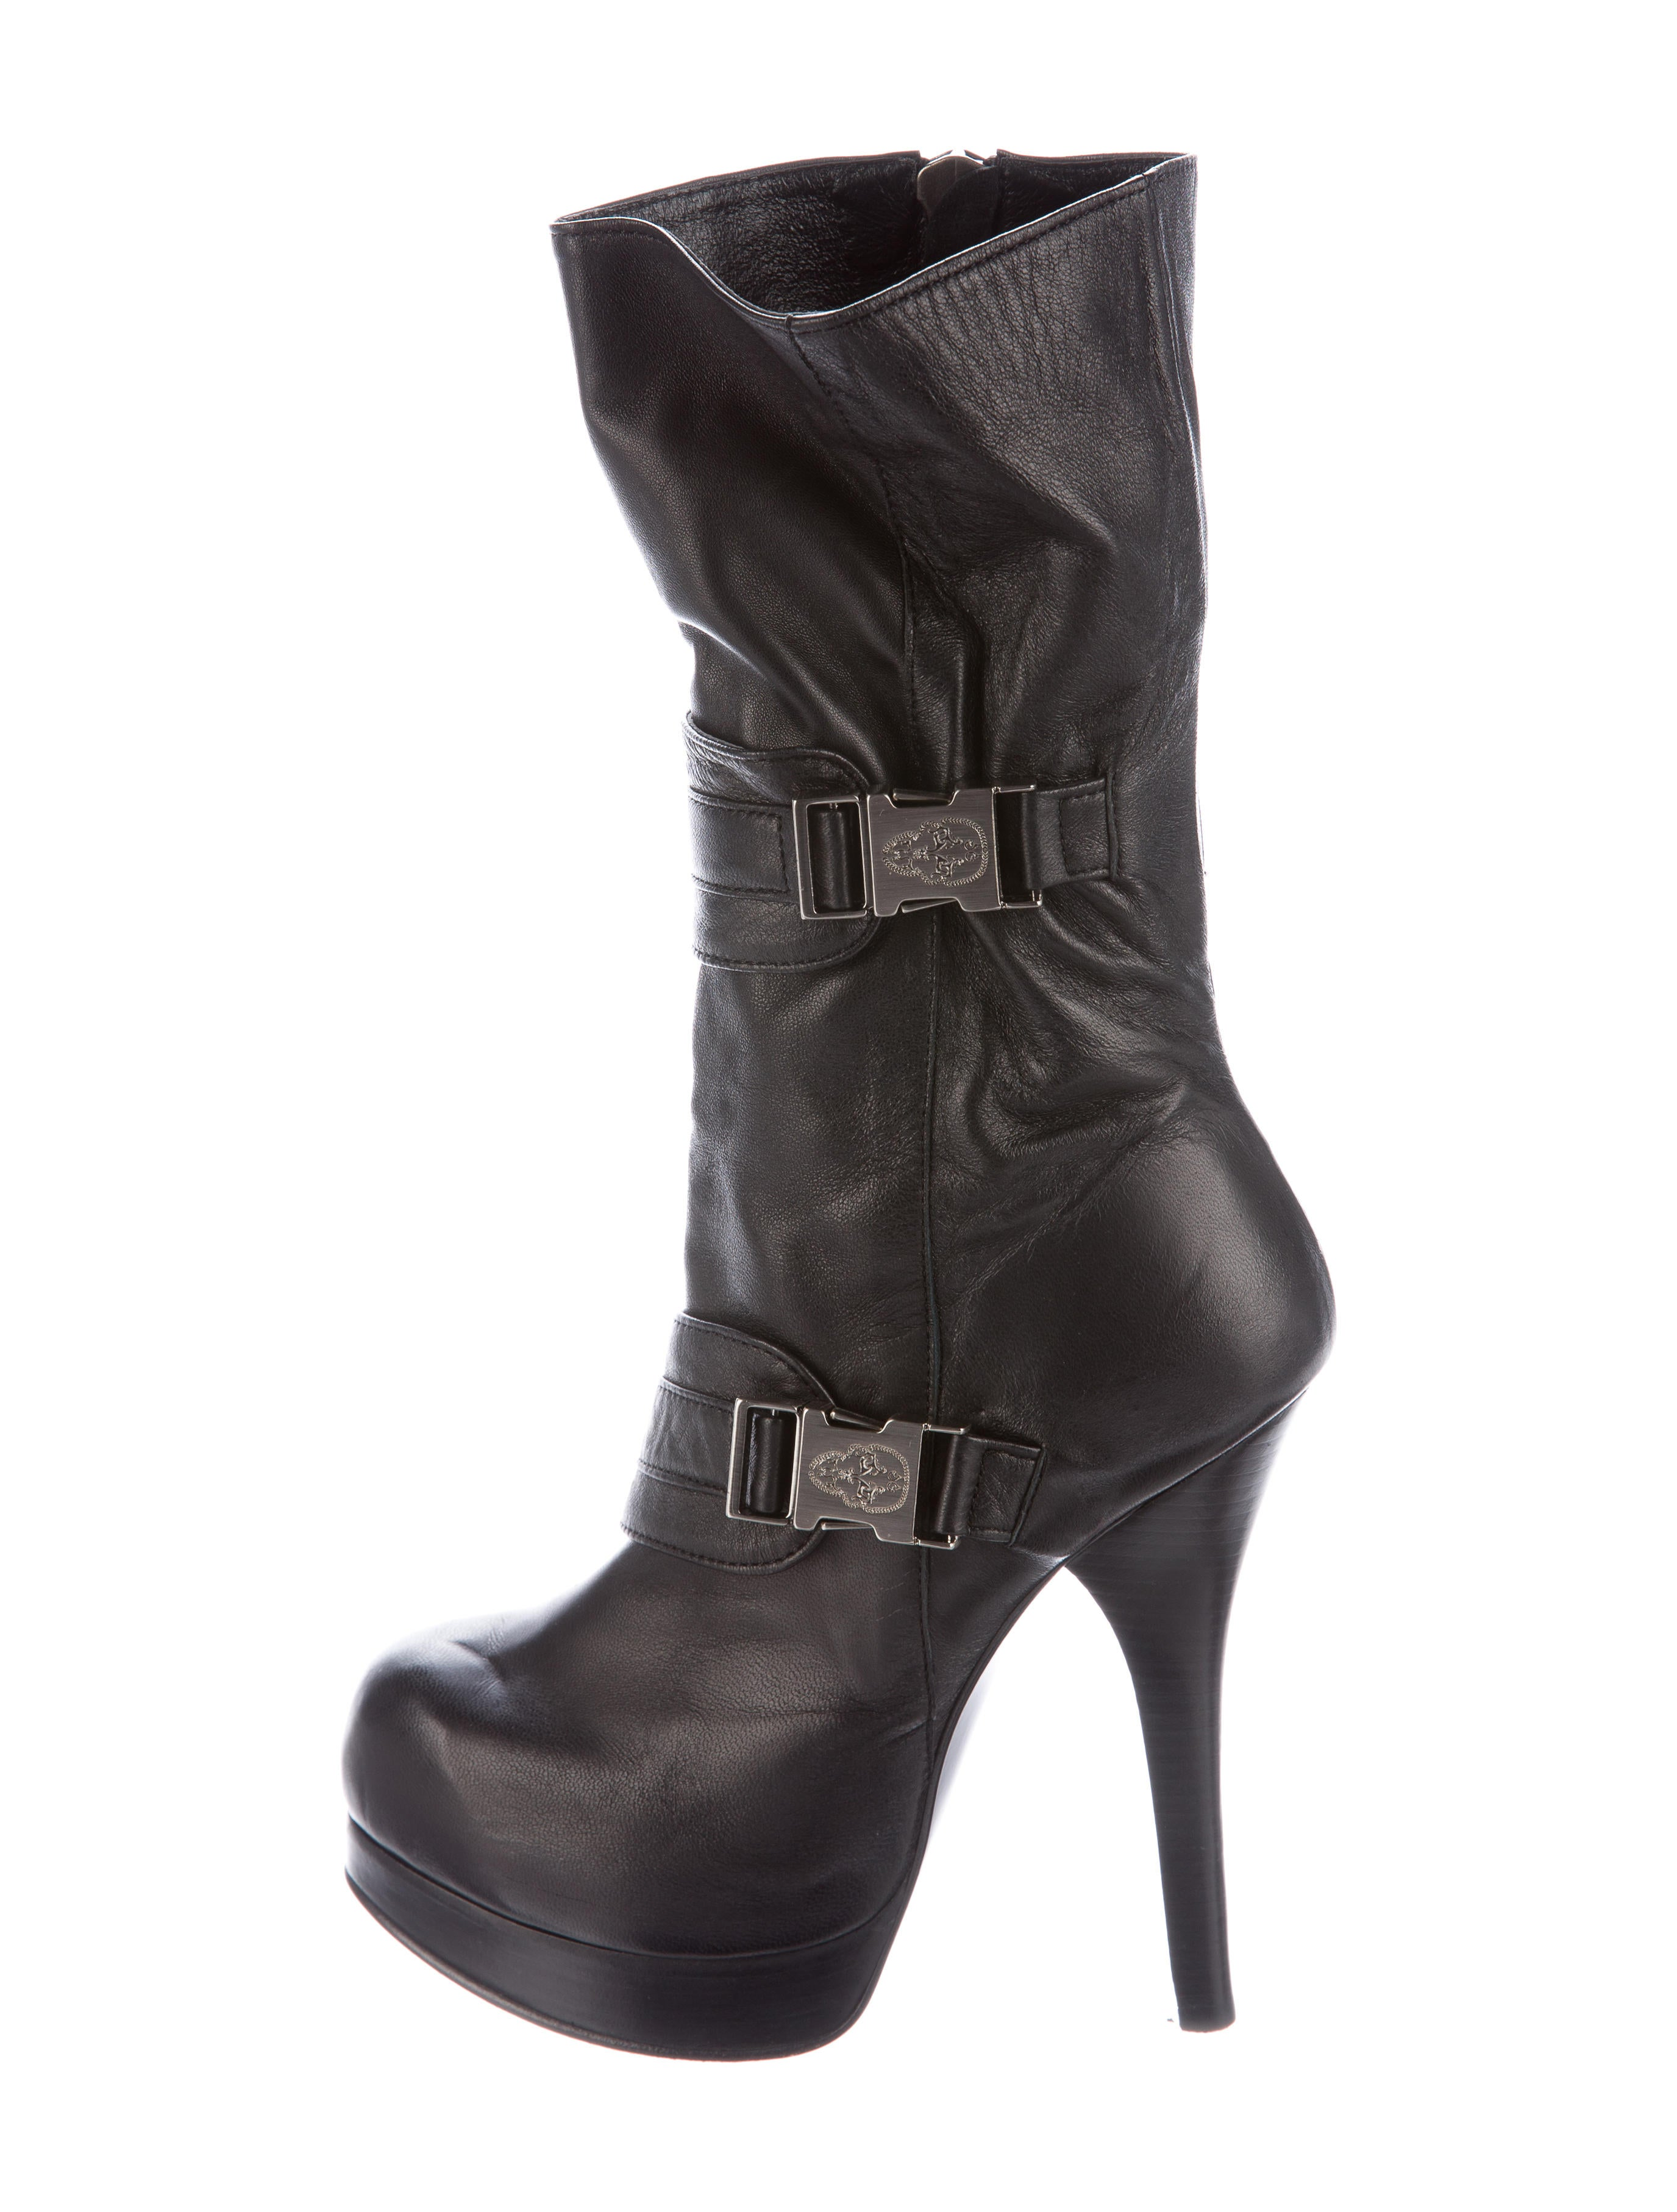 wylde leather platform boots shoes thm24426